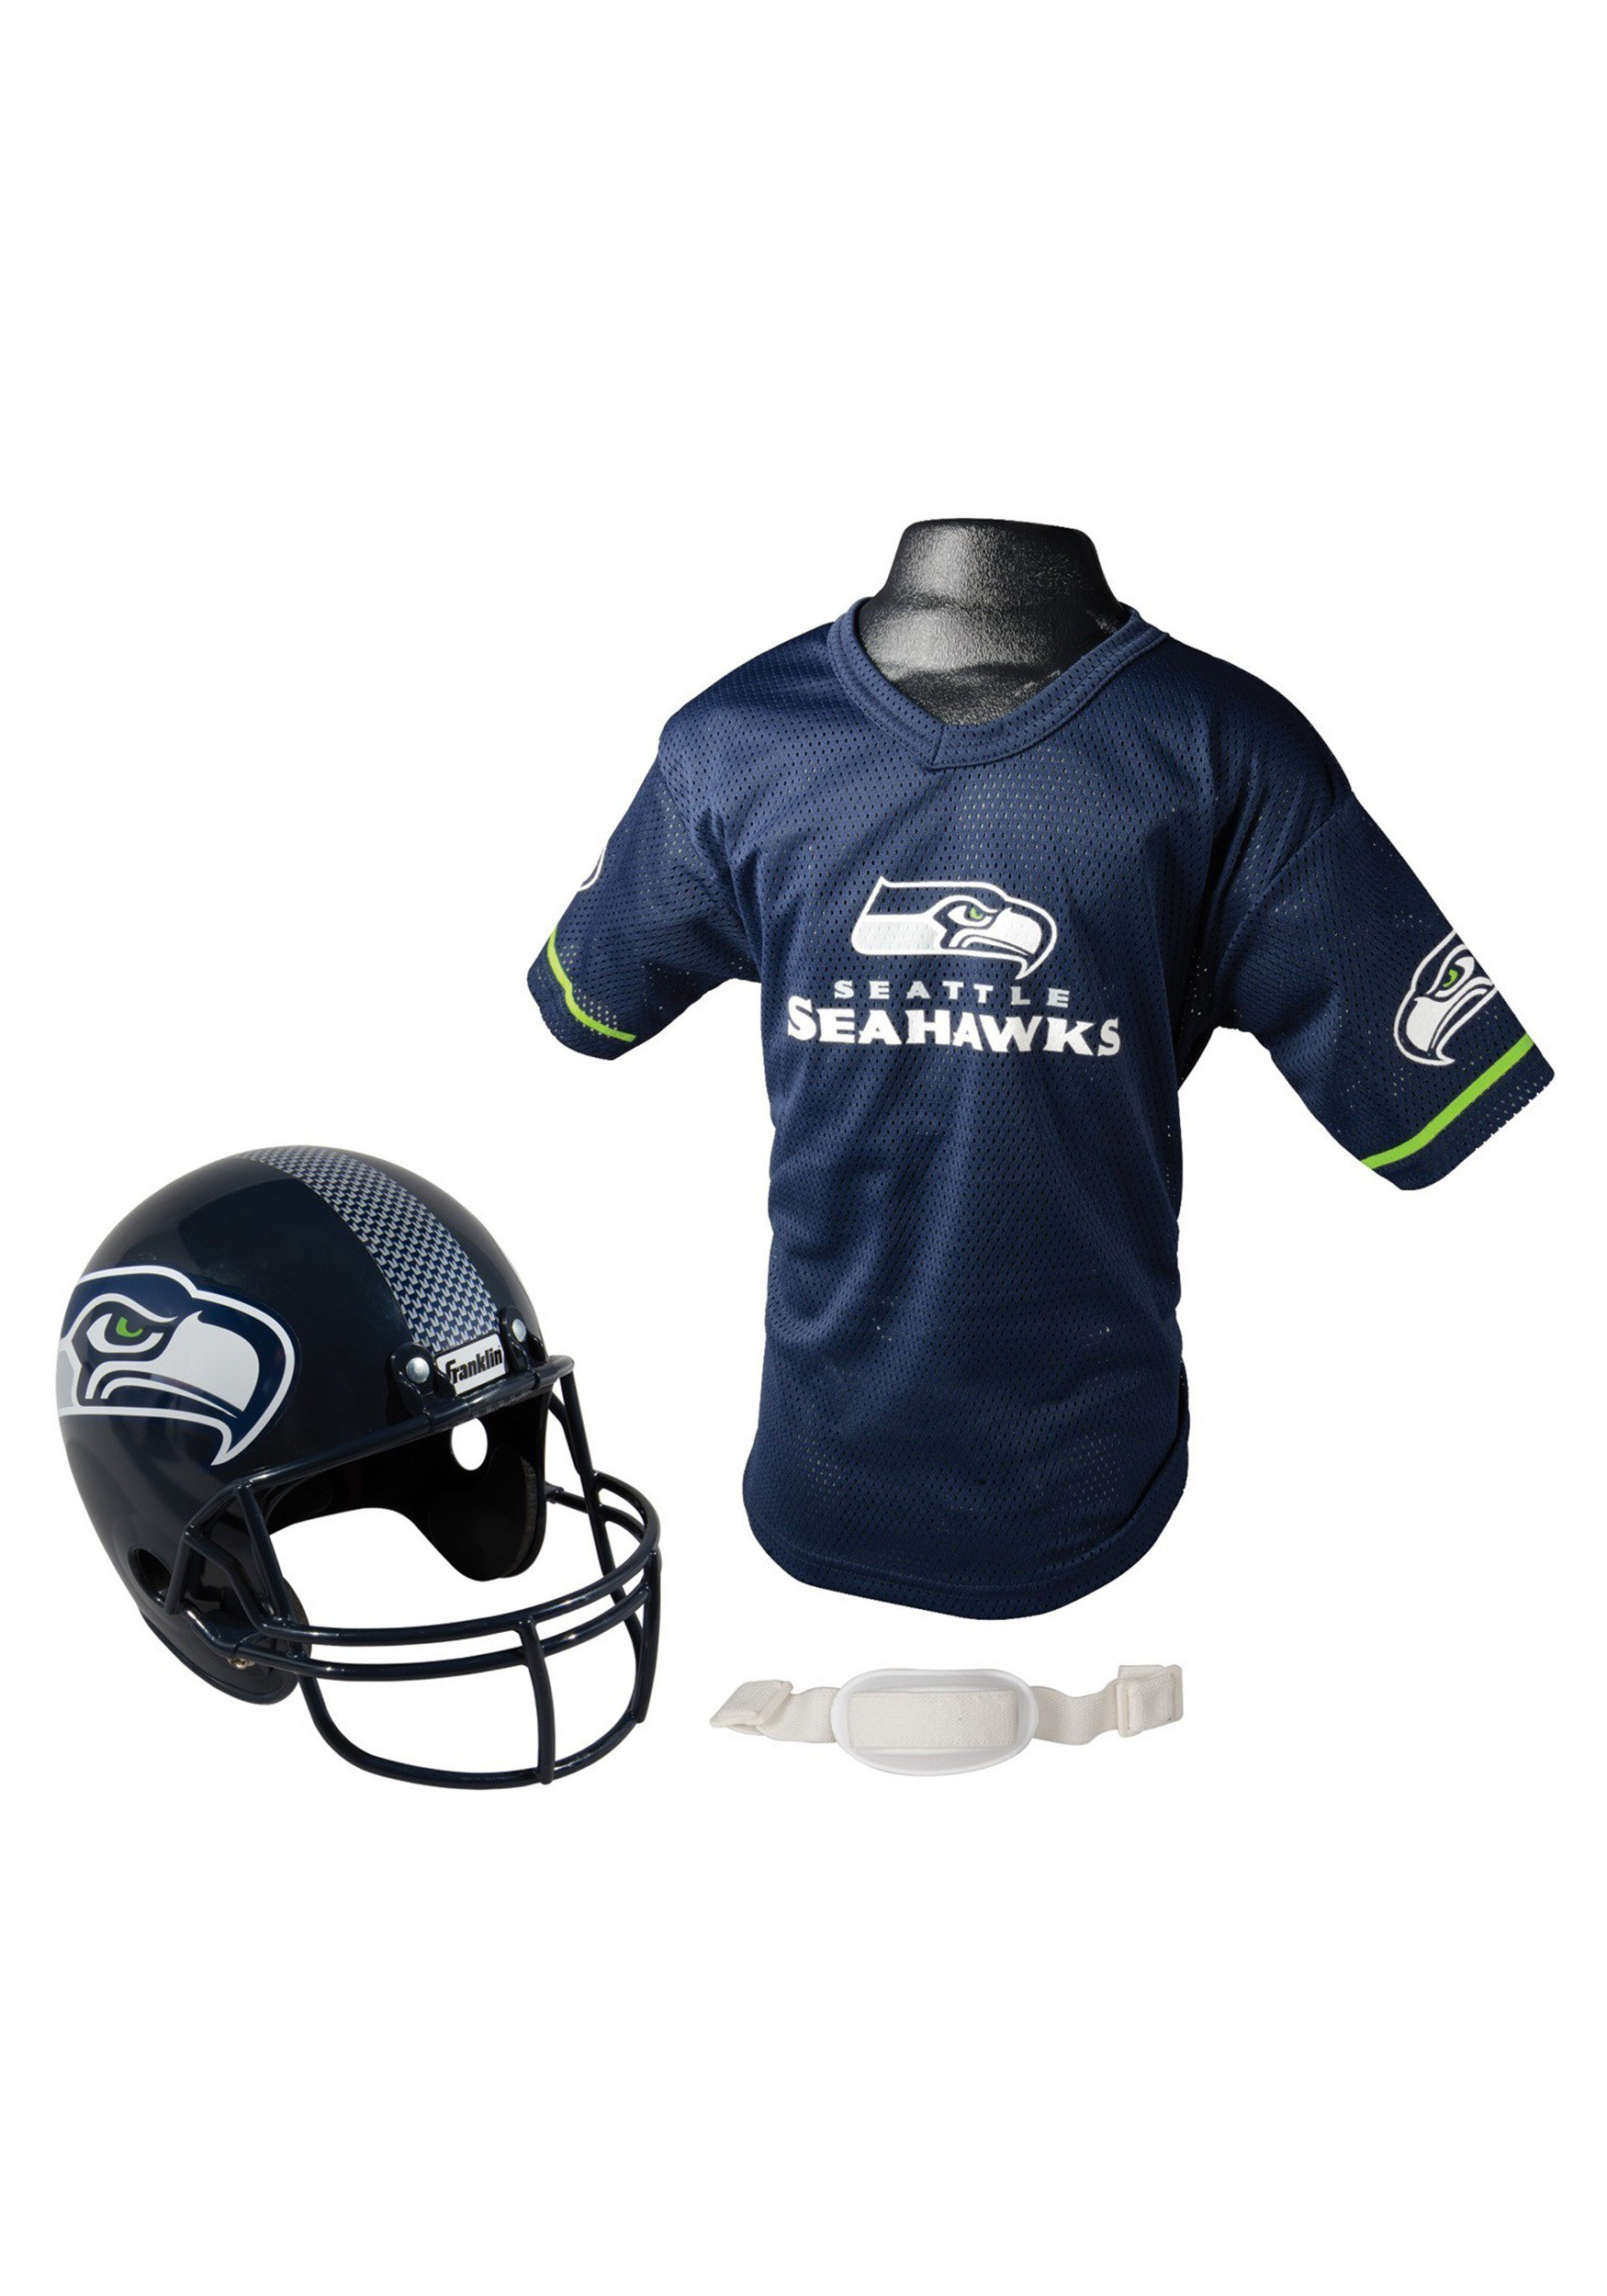 a36cb9303 Child NFL Seattle Seahawks Helmet and Jersey Costume Set